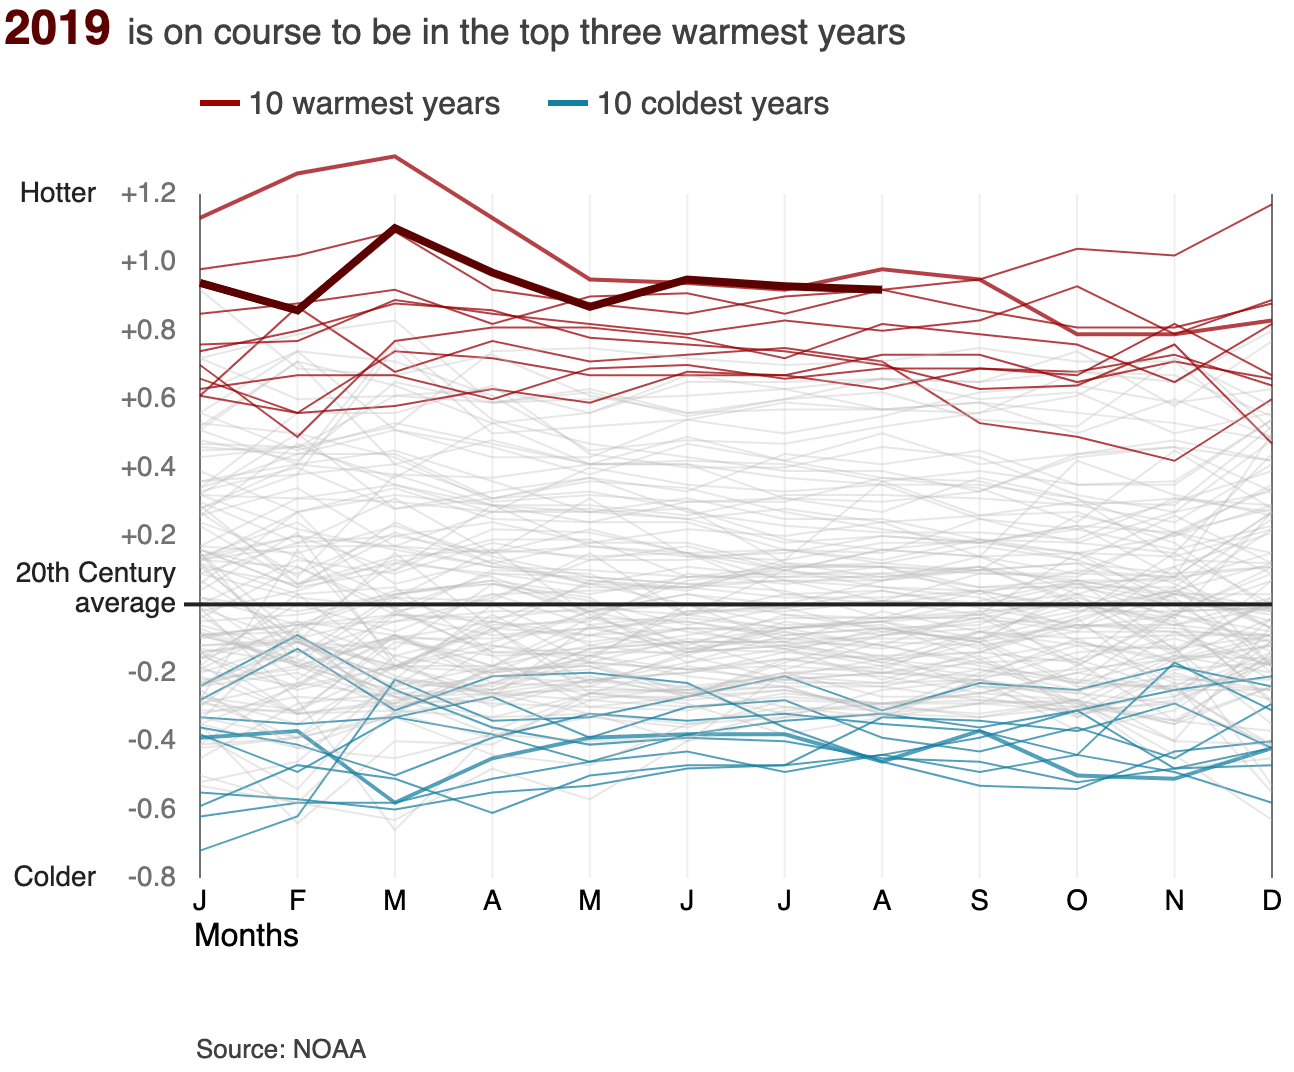 environment Animated chart showing that most of the coldest 10 years compared to the 20th century average were in the early 1900s, while the warmest years have all been since 2000, with 2018 on course to be the fourth warmest year on record